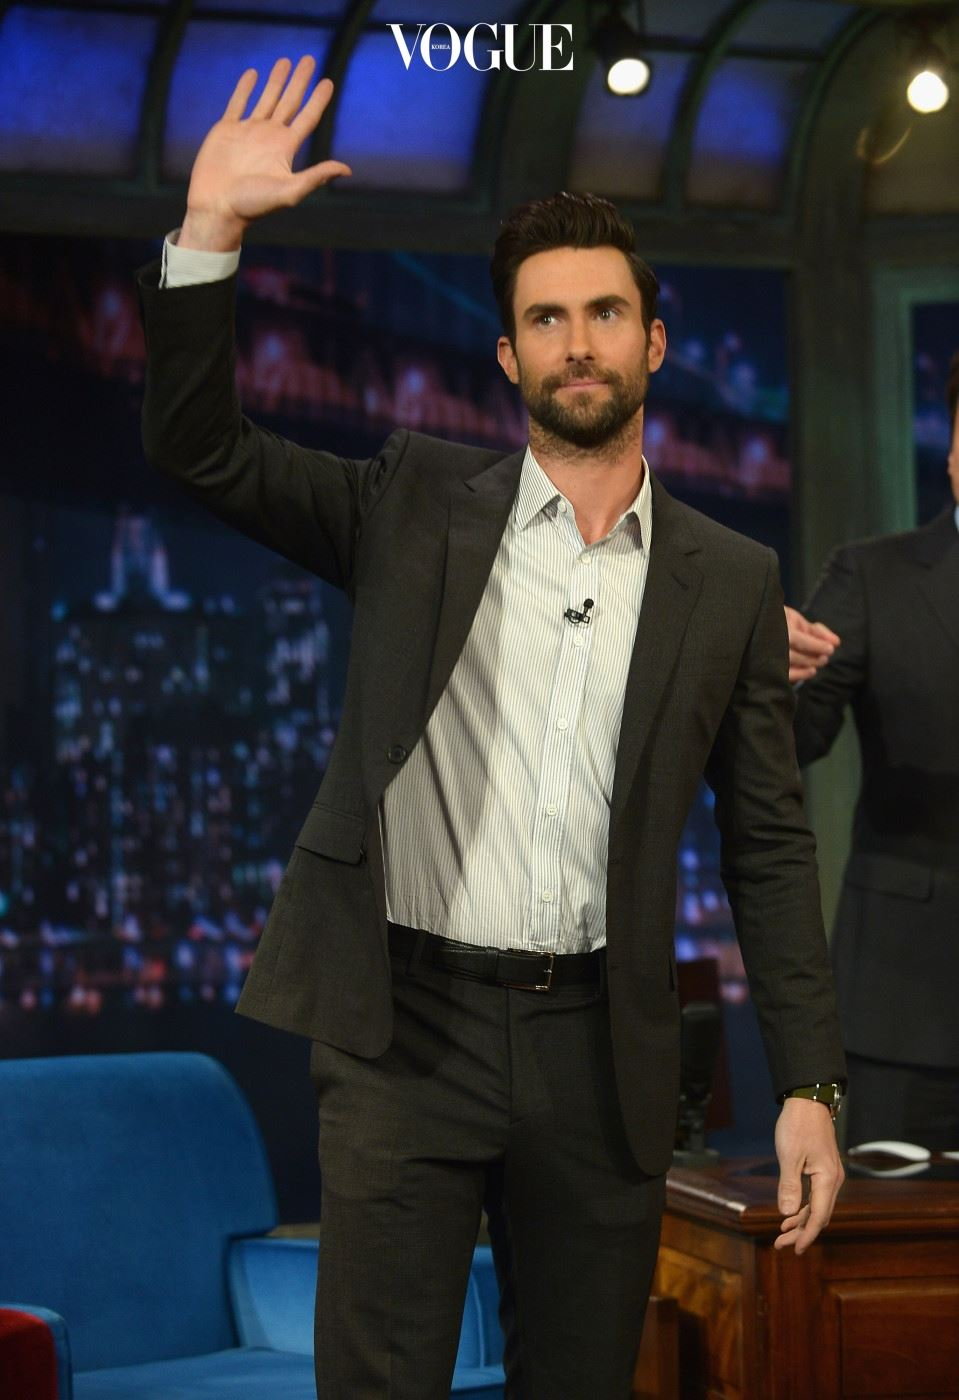 """NEW YORK, NY - JUNE 14:  Adam Levine visits """"Late Night With Jimmy Fallon"""" at Rockefeller Center on June 14, 2013 in New York City.  (Photo by Theo Wargo/Getty Images)"""